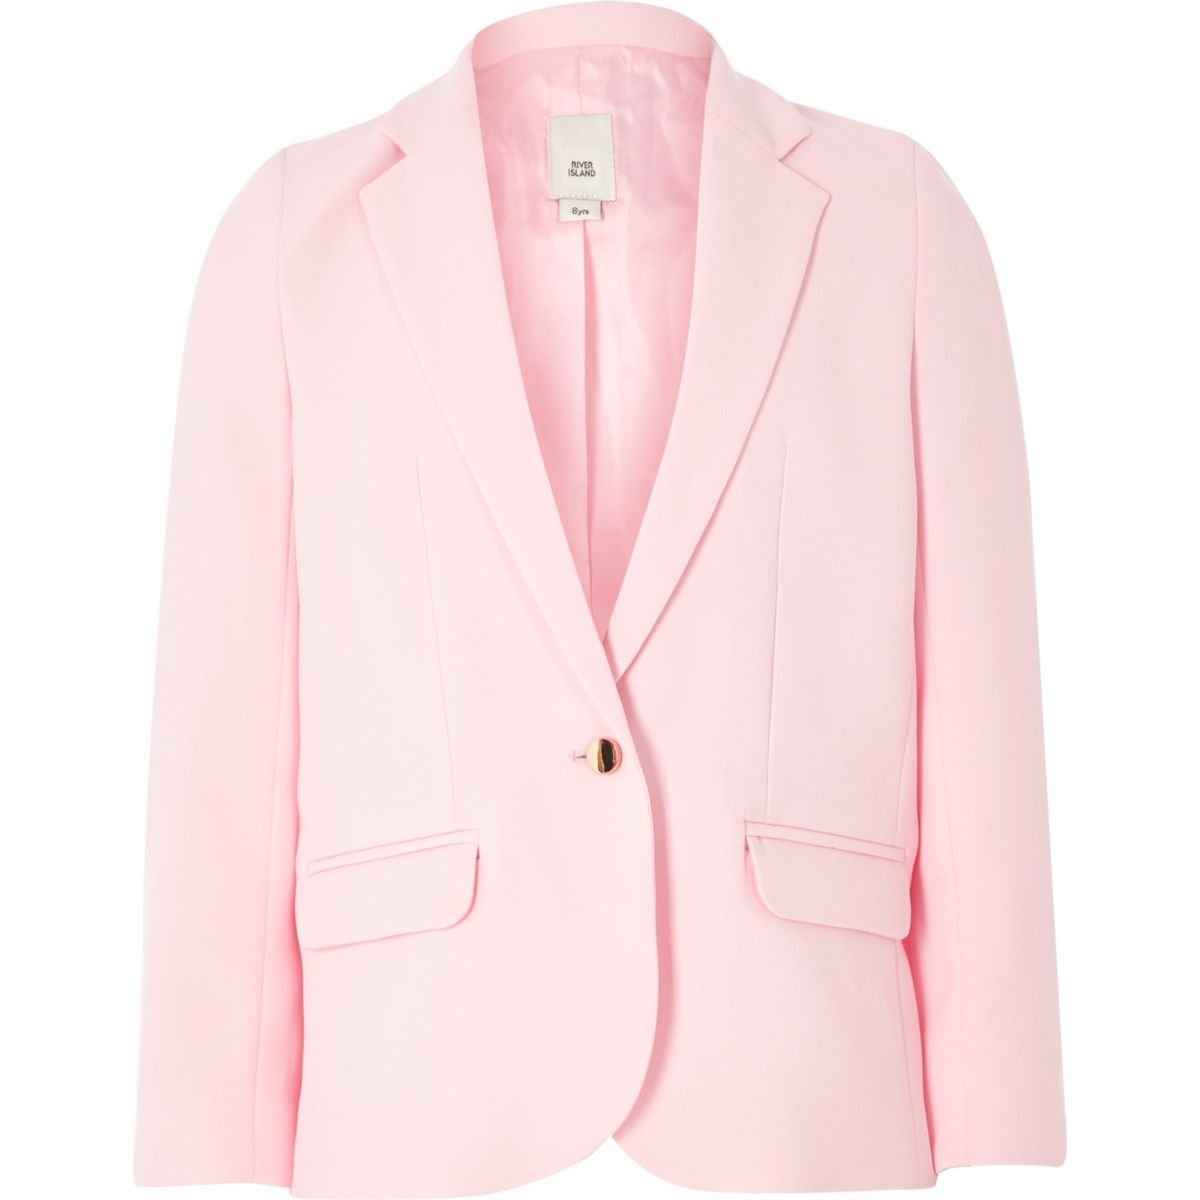 Girls light pink slouch blazer - Blazers - Coats & Jackets - girls